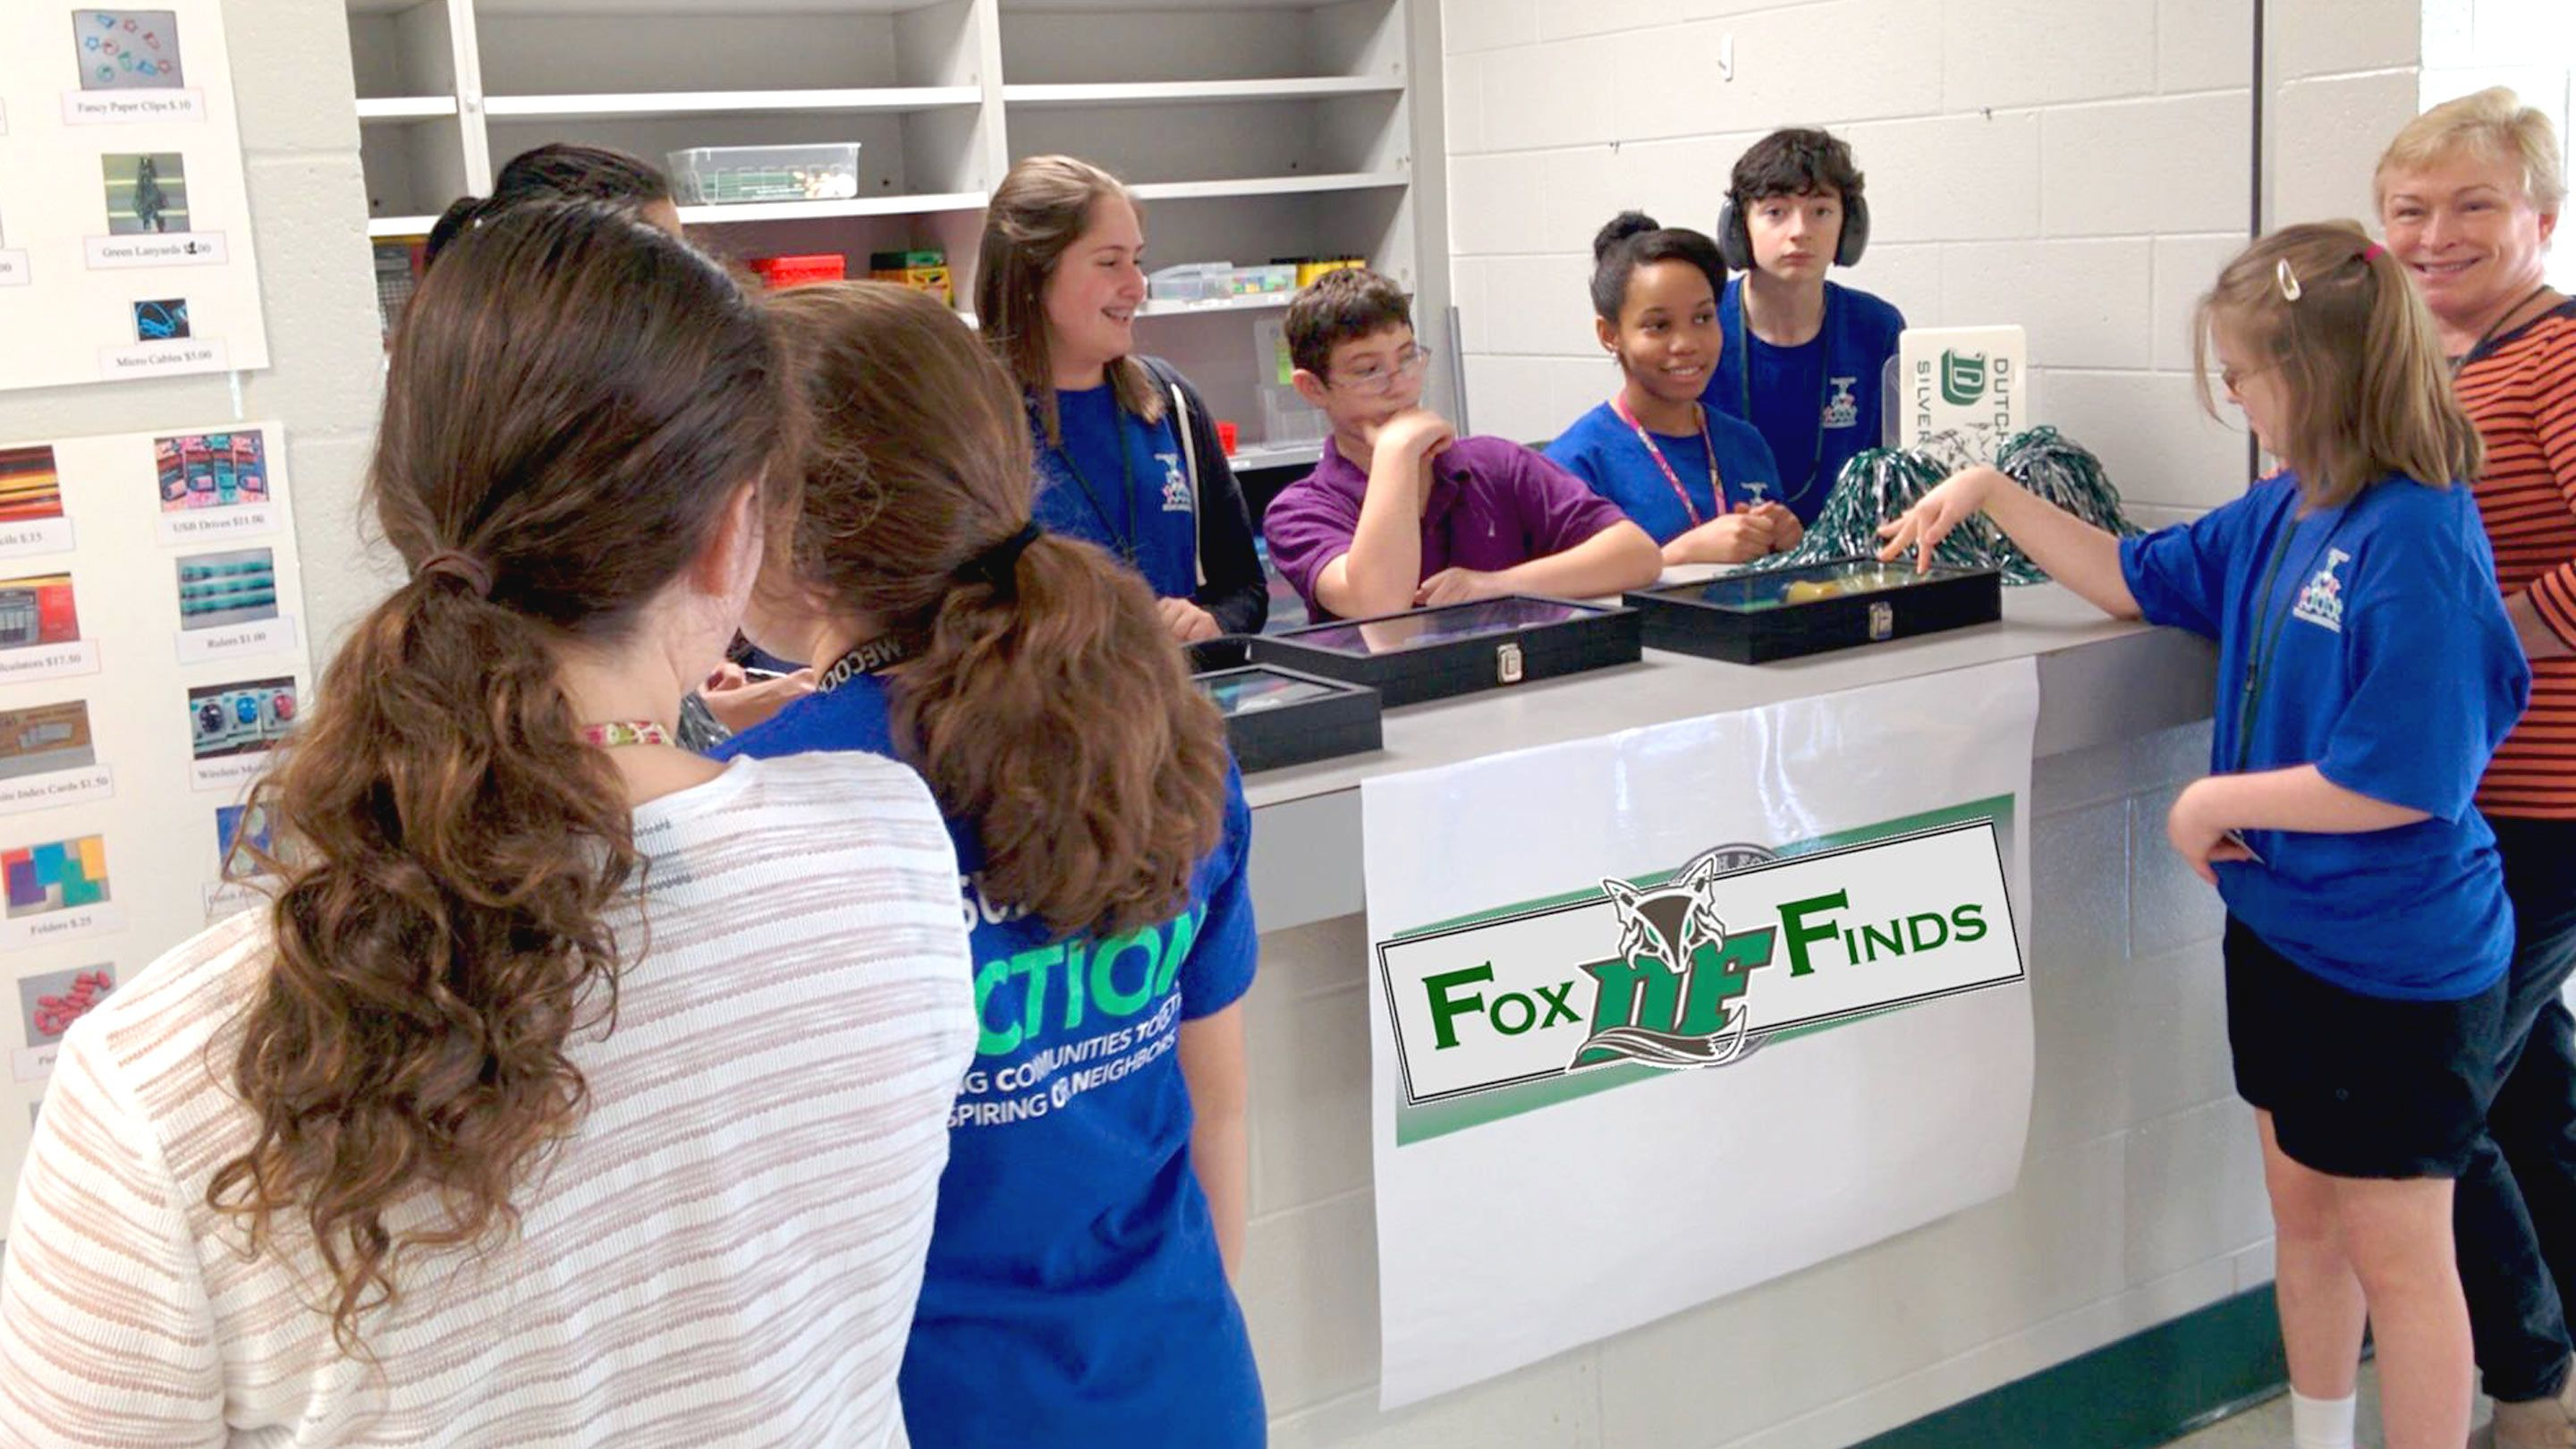 A team of students manages a school store together.